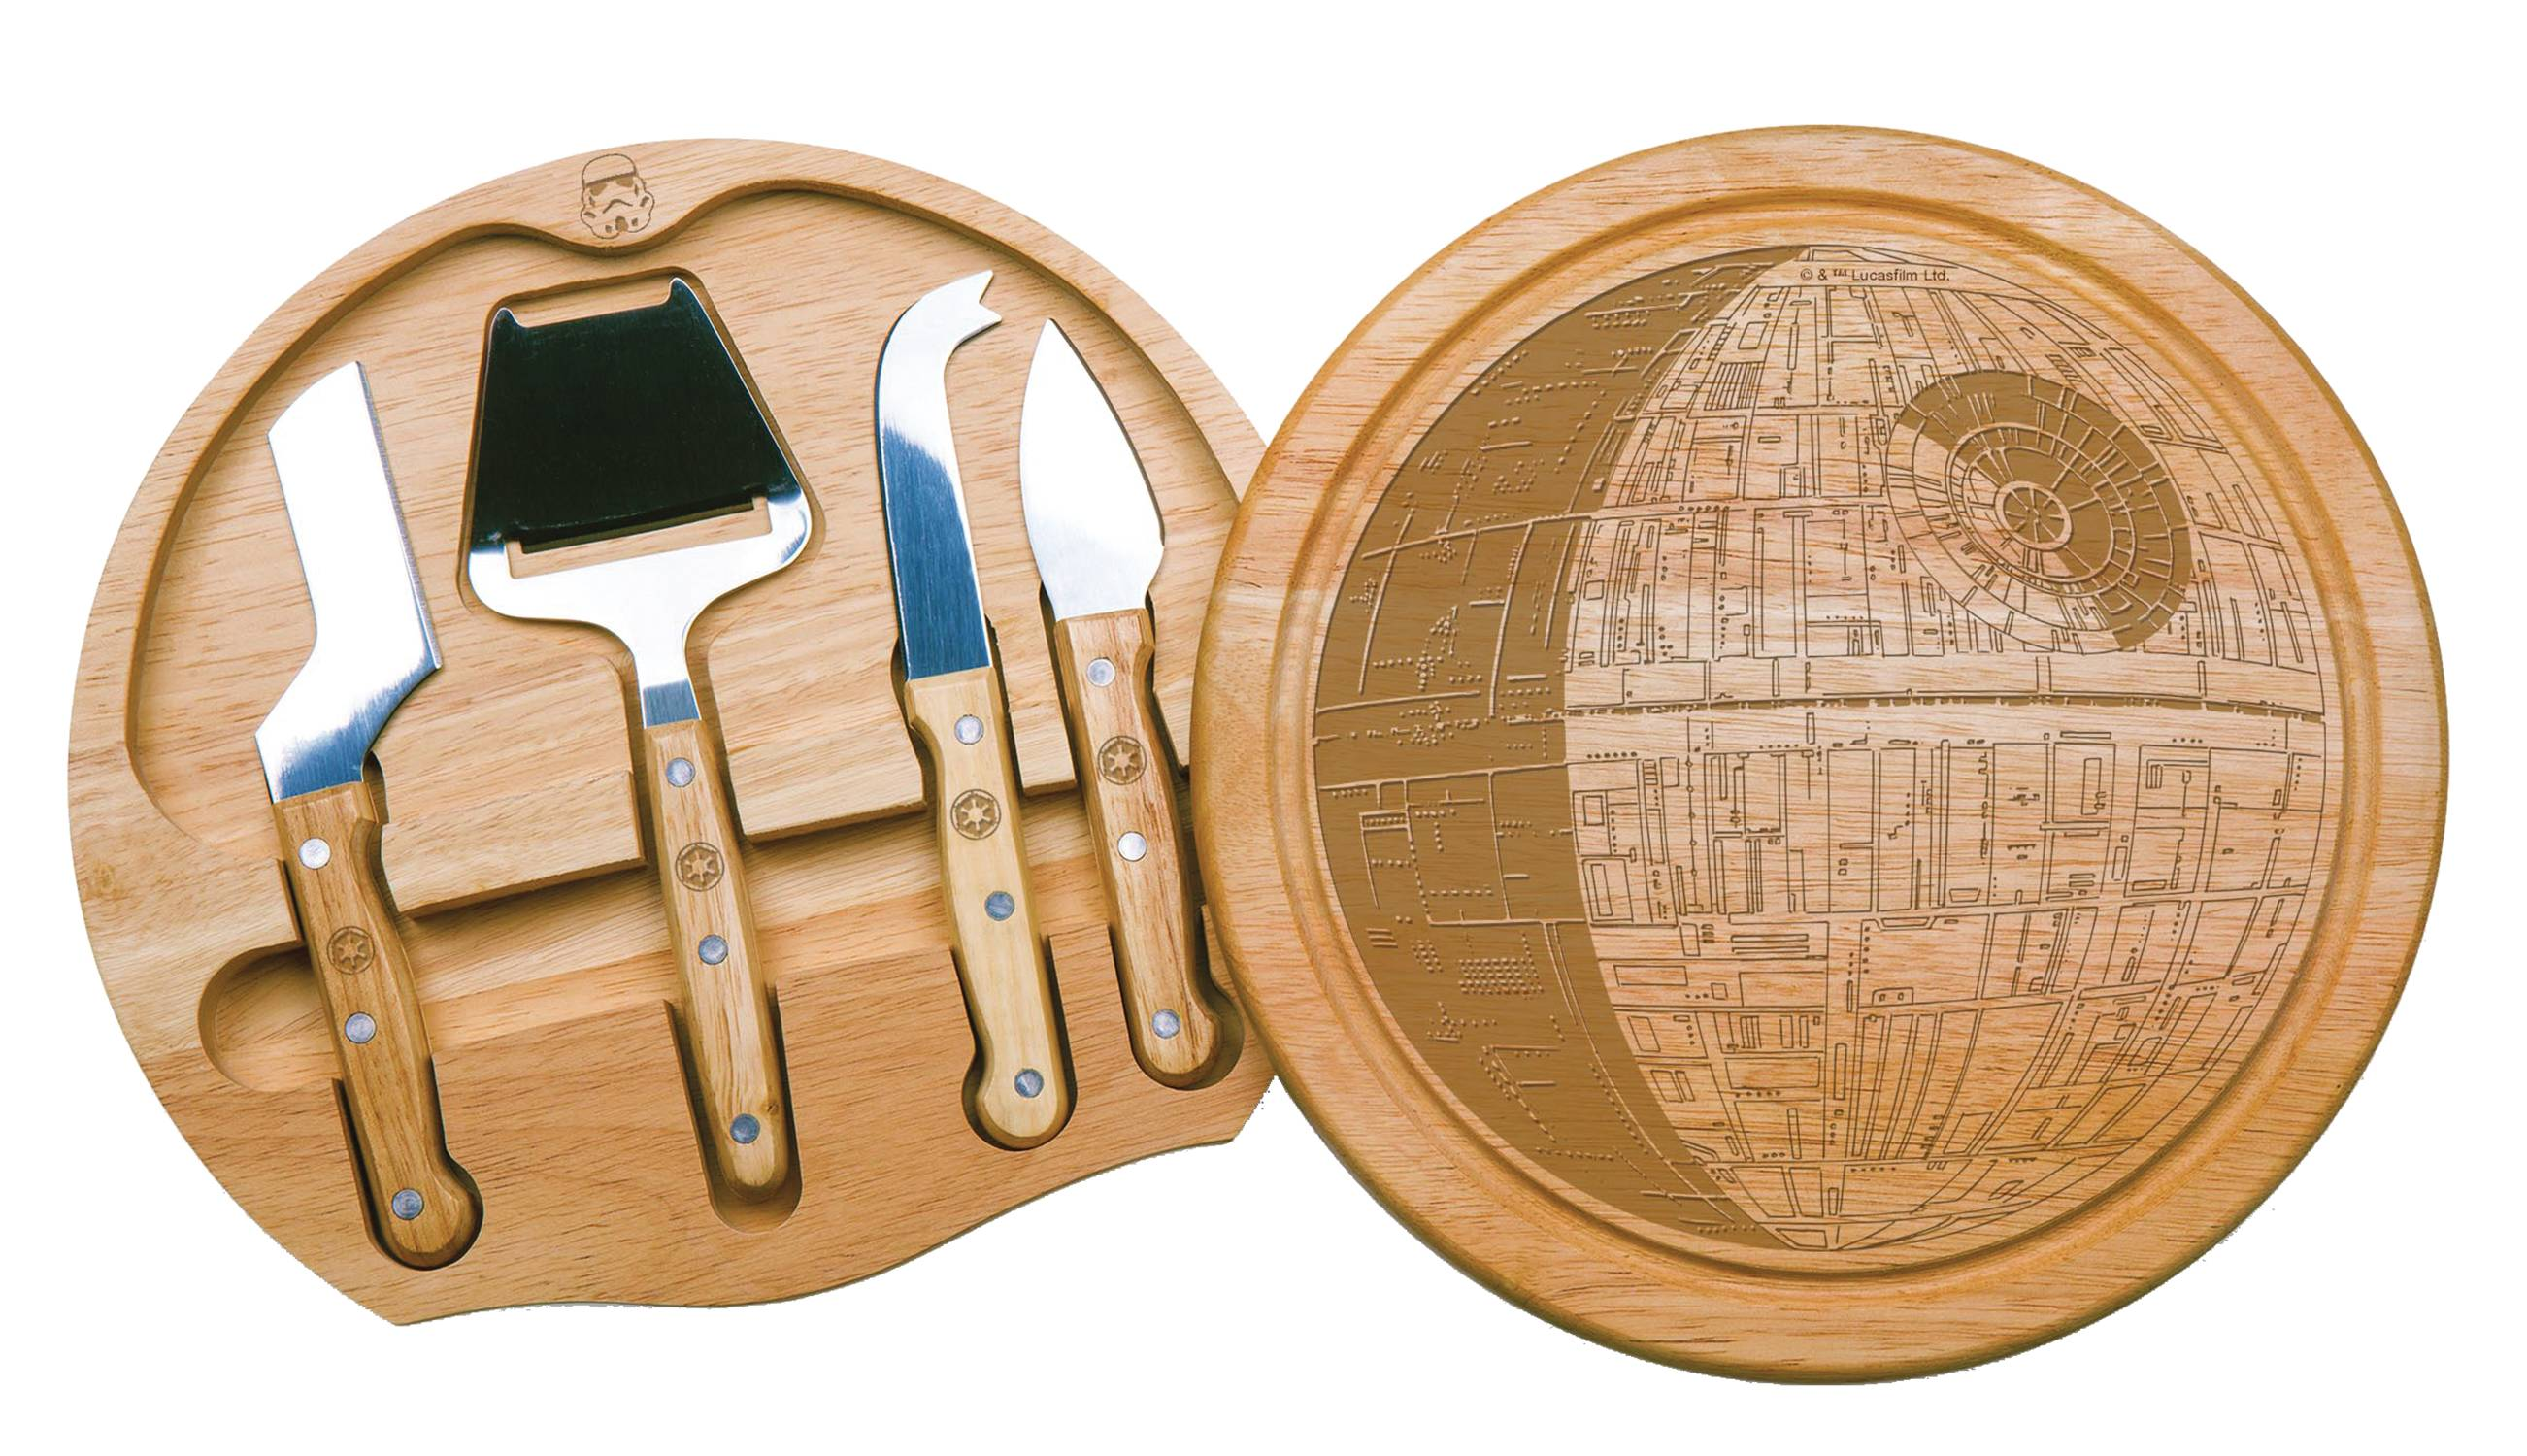 STAR WARS DEATH STAR CIRCO CHEESE BOARD AND TOOLS SET